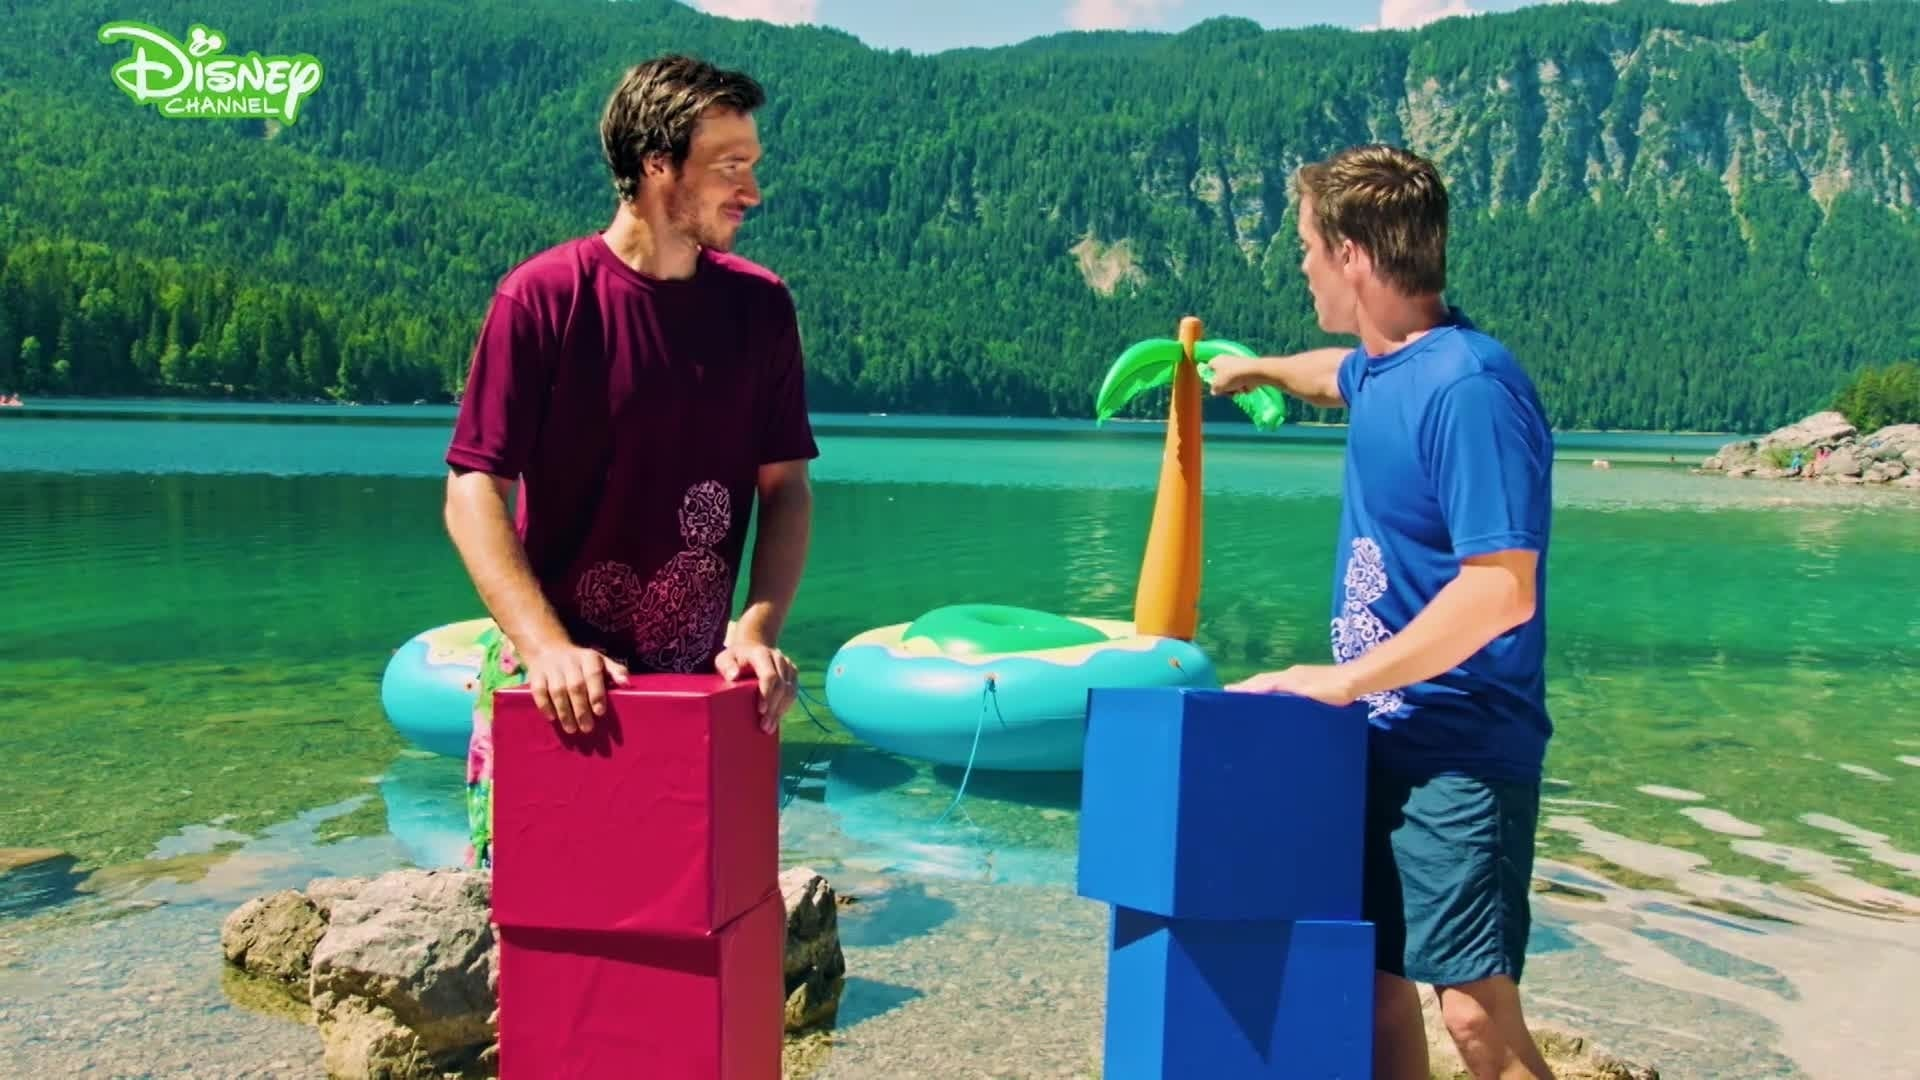 Disney Channel Sommerspiele - Wackelinsel